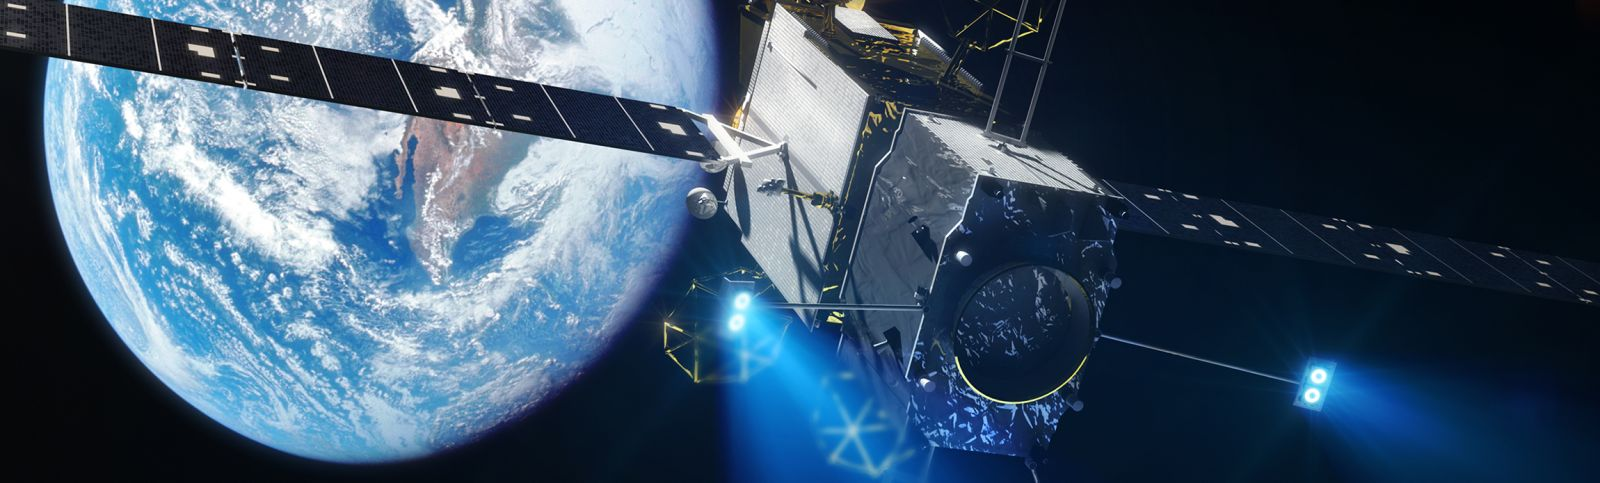 In this artist's depiction the MEV-1 spacecraft is attached to a customer's satellite and is performing its role in extending its operational life. Image Credit: Nathan Koga / SpaceFlight Insider